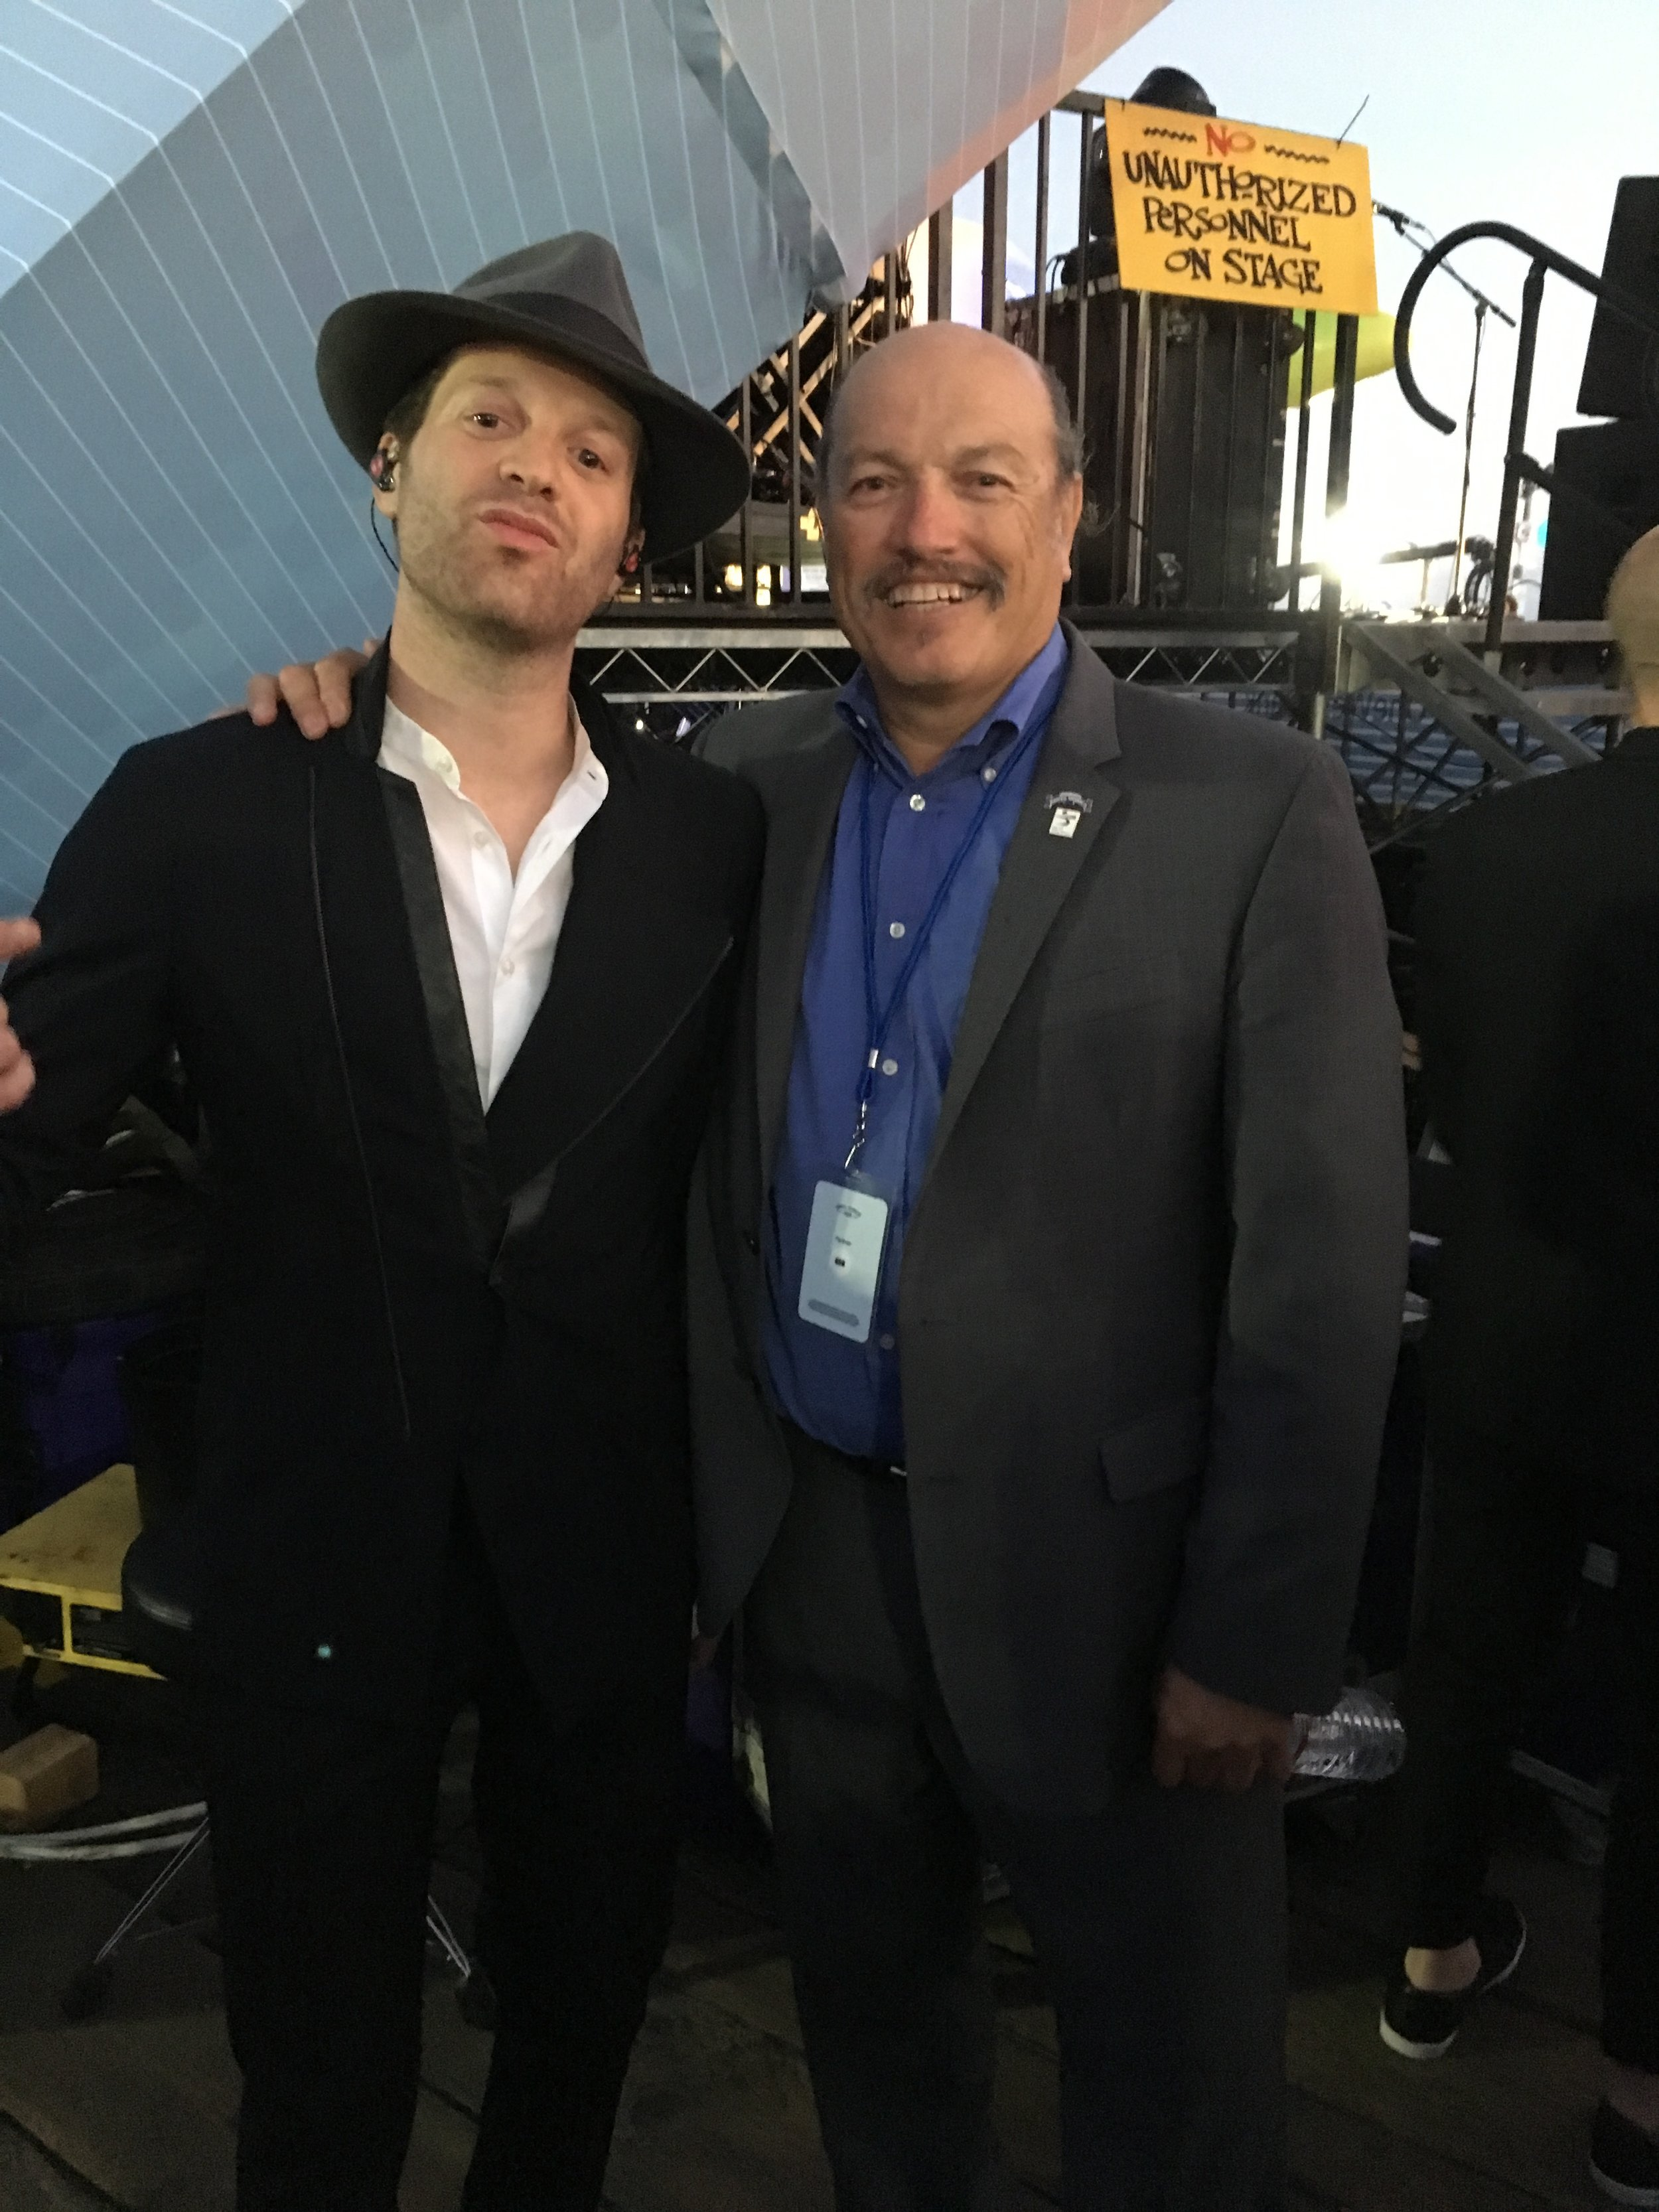 Mayor Tony Vazquez with Mayer Hawthorne at the opening night of the Twilight Concert series in Santa Monica, CA